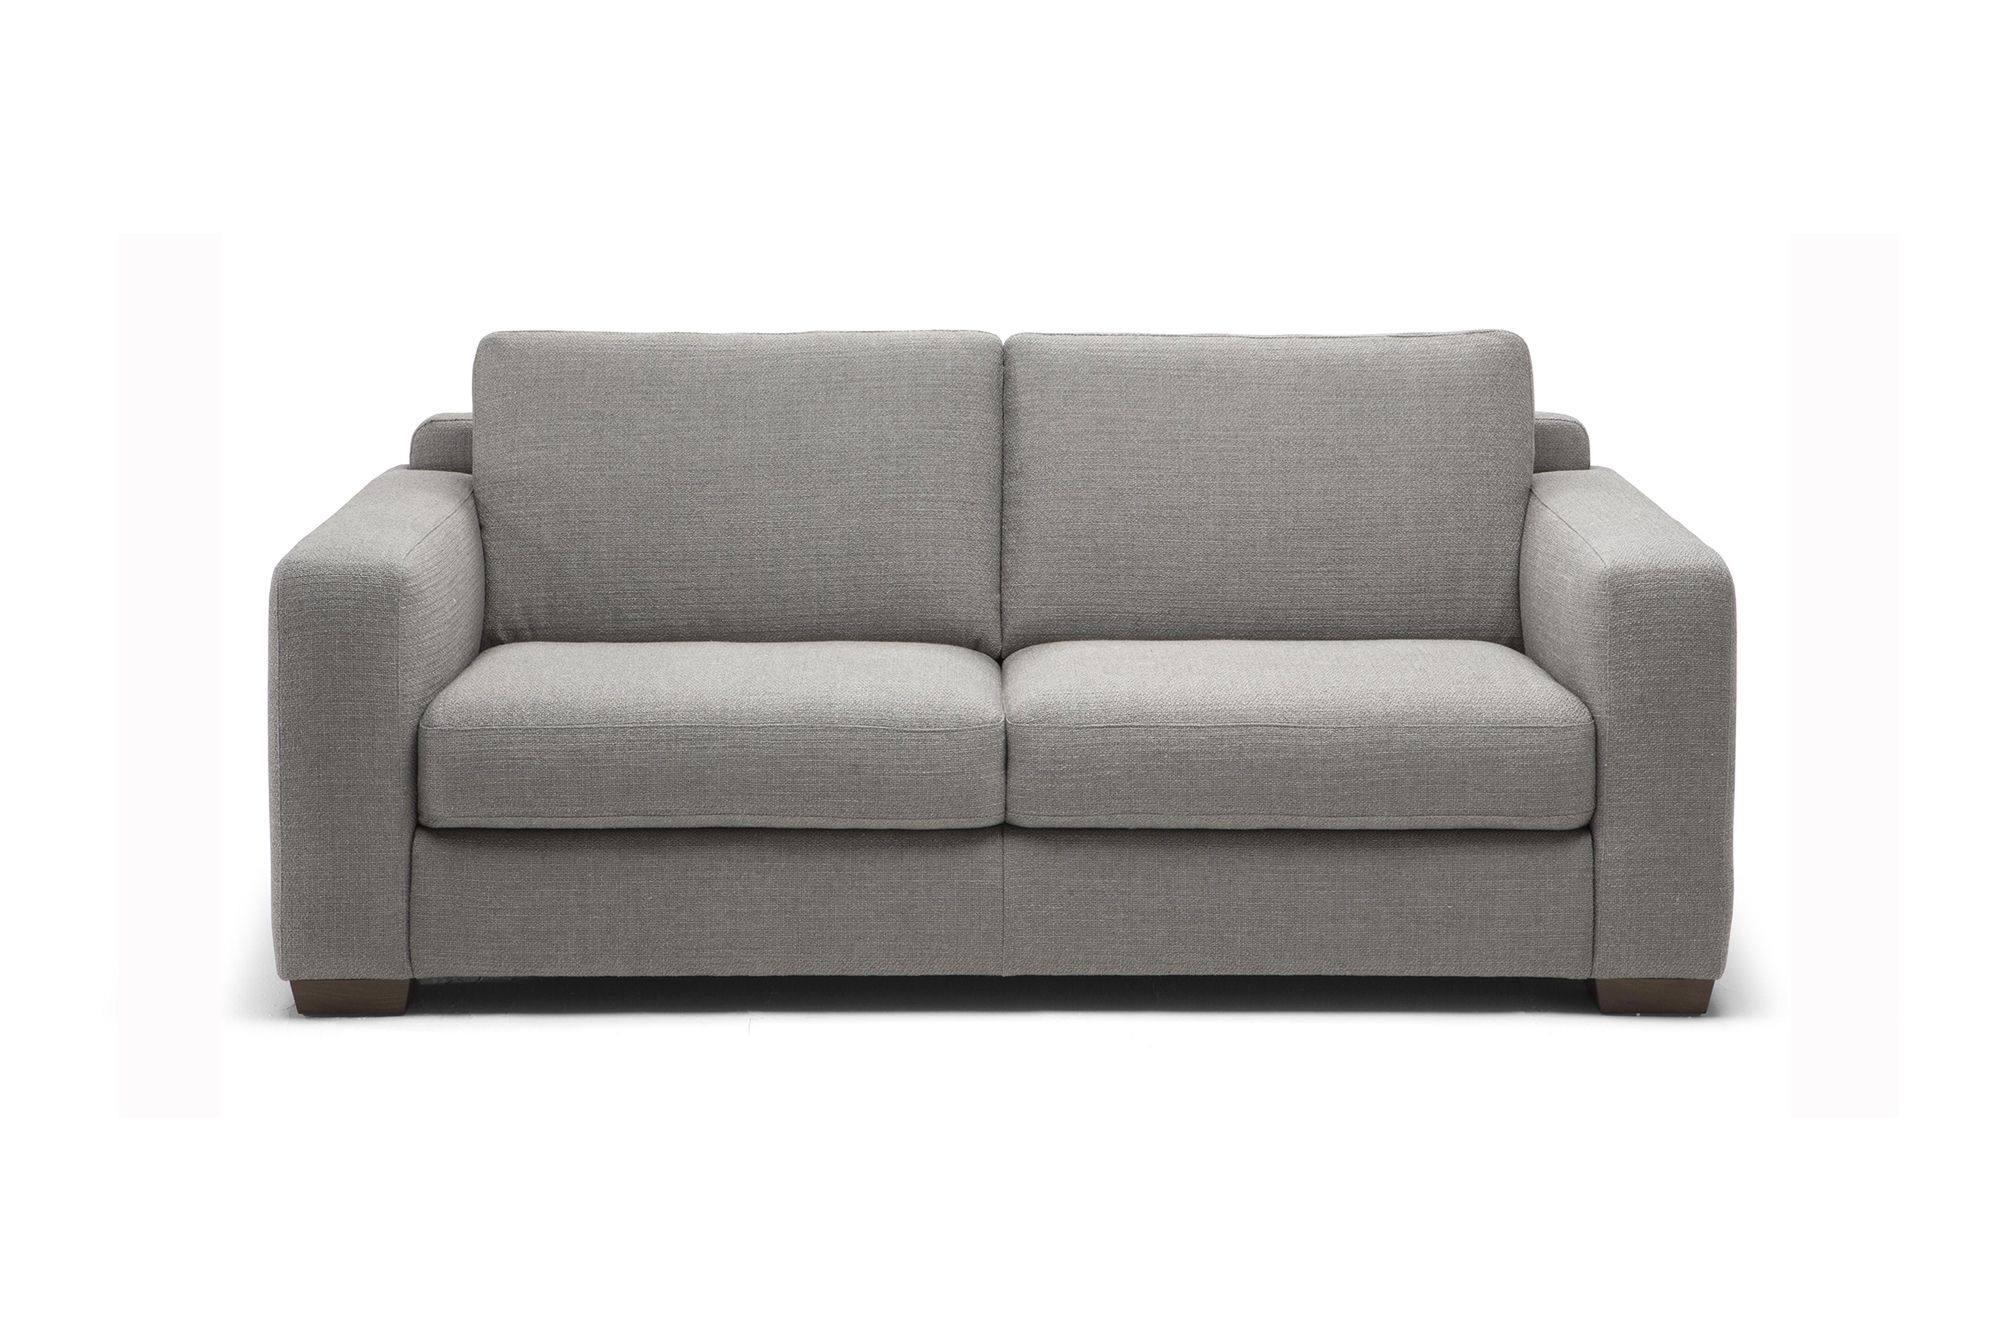 Natuzzi Editions Pasquale 2 Seater Sofa Fabric 78 All Sofa Collections Meubles